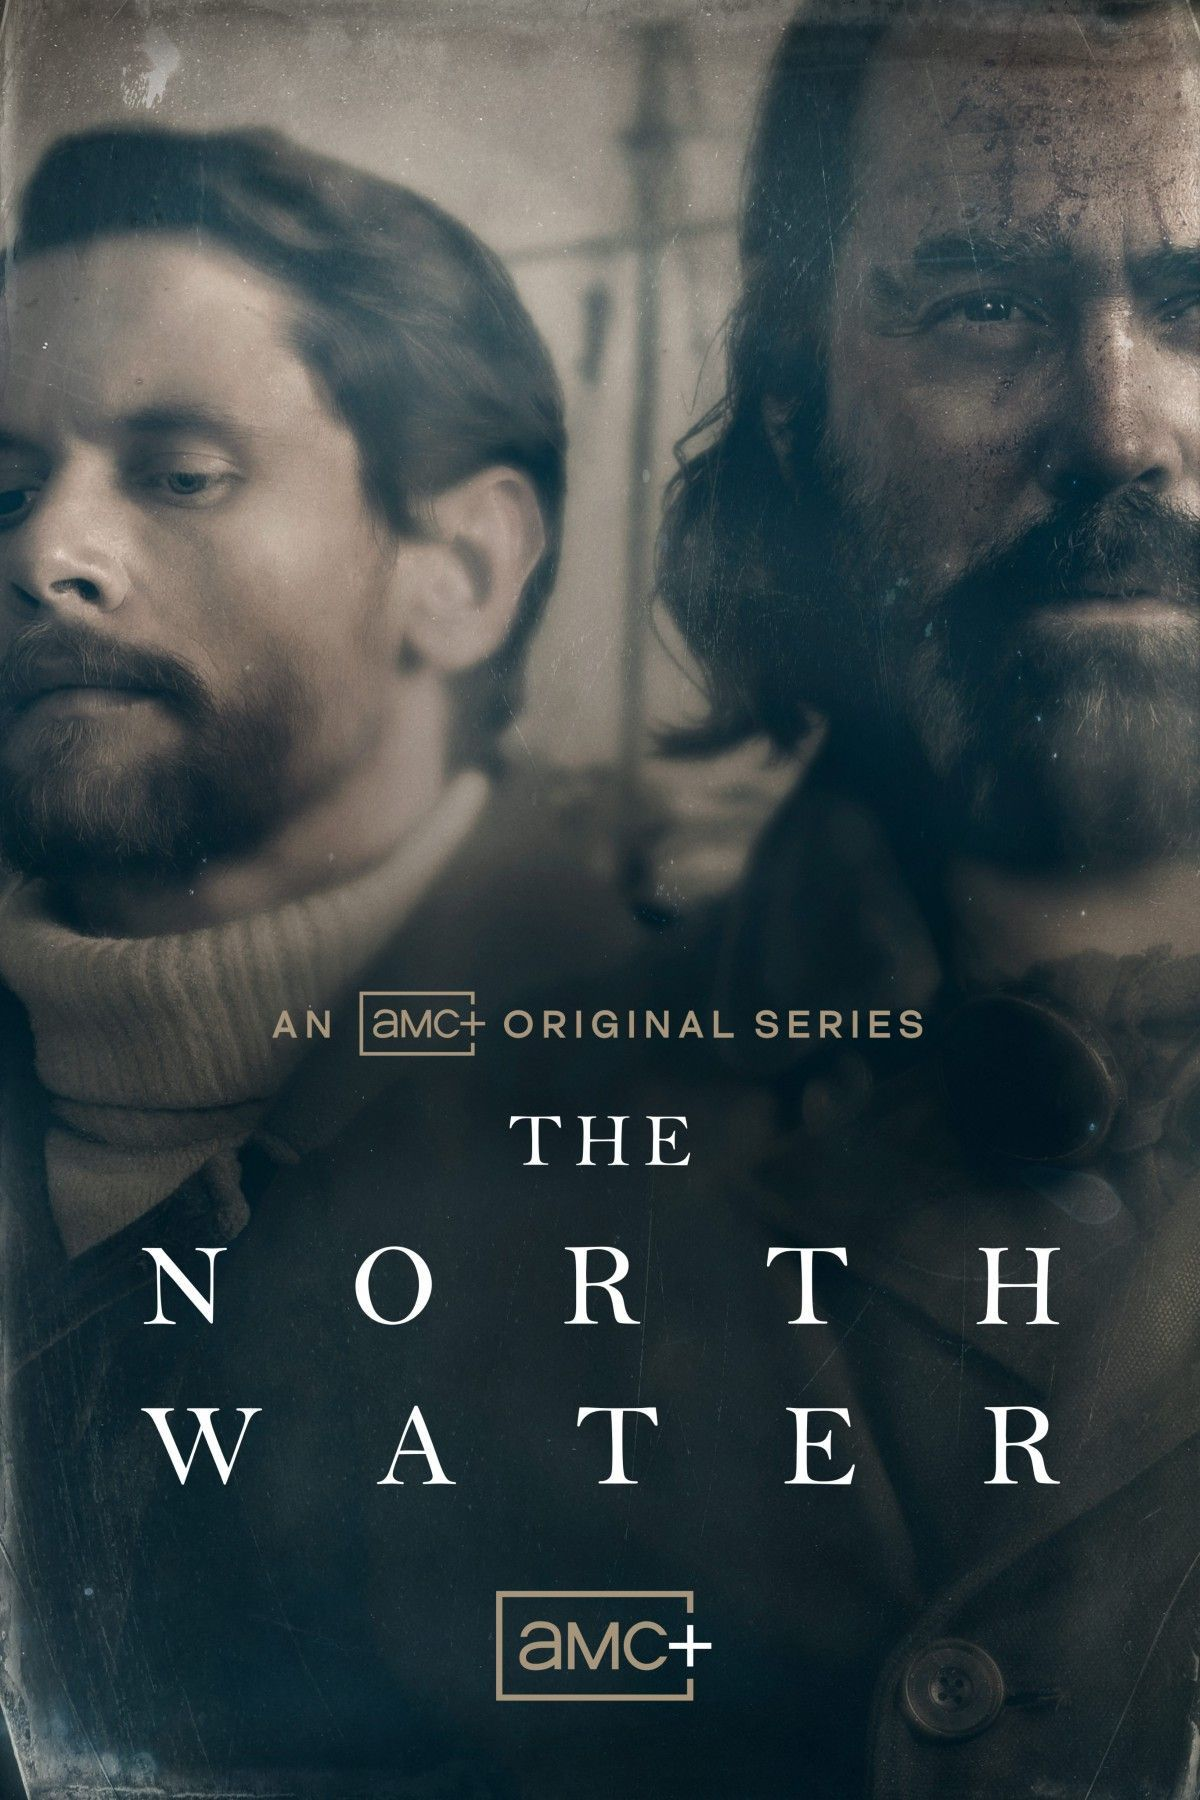 The North Water (2021) -Andrew Haigh - Saison 01 Complète (5/5) - FRENCH - WEBRIP